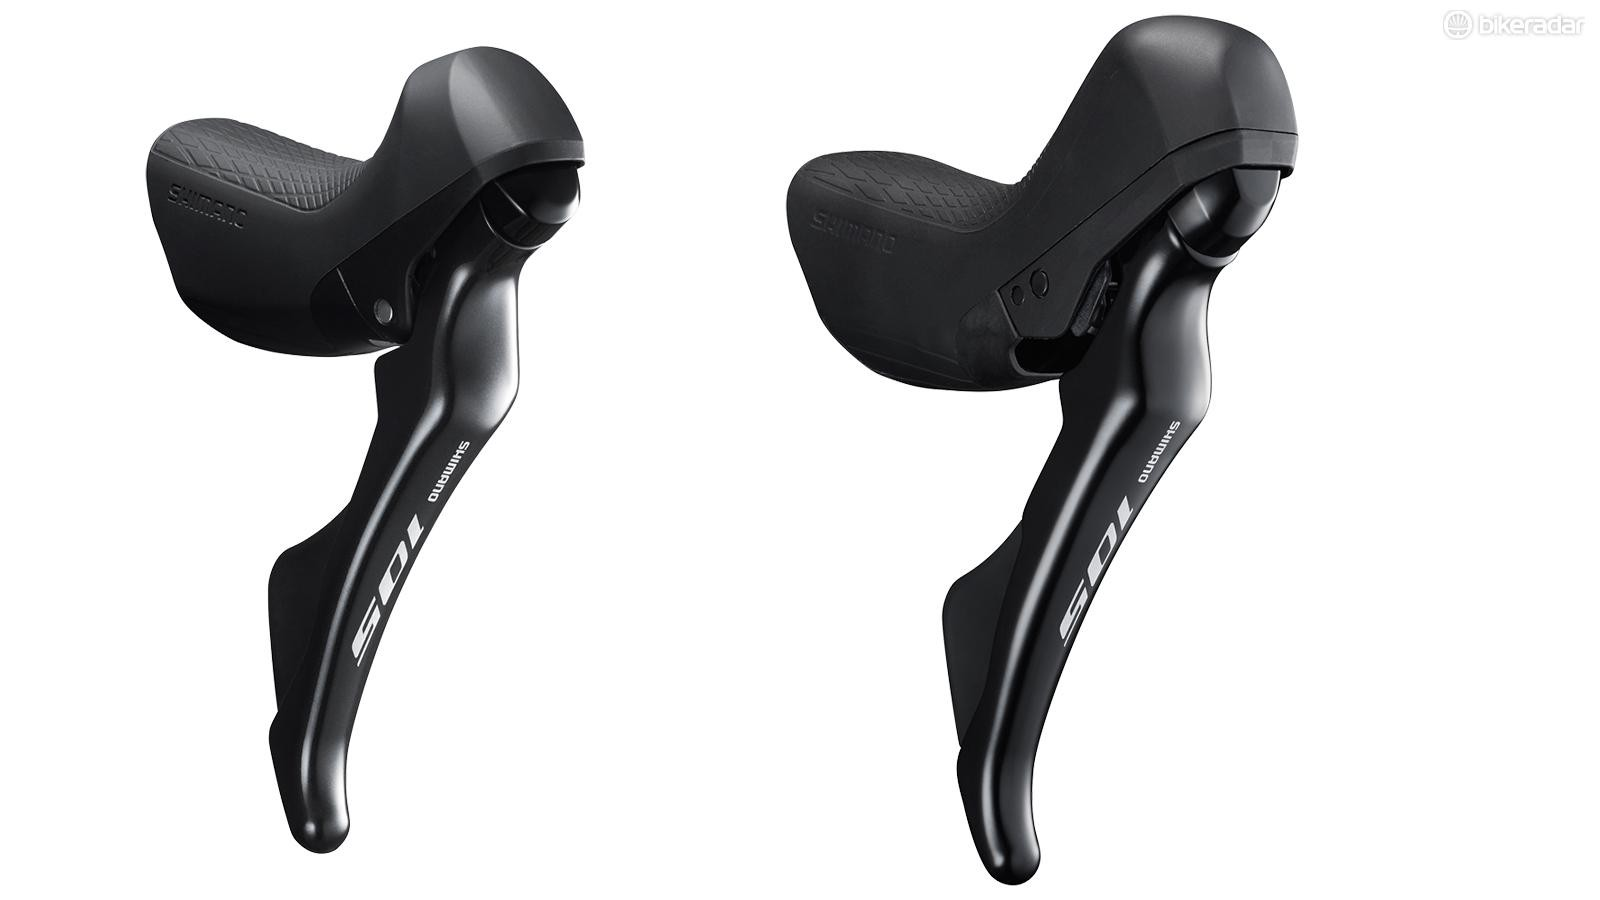 Shimano's new R7020 lever, shown on the right next to a non-hydraulic R7000, looks great